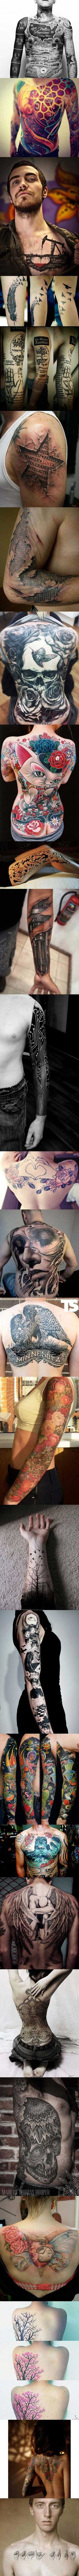 Unique tattoos.